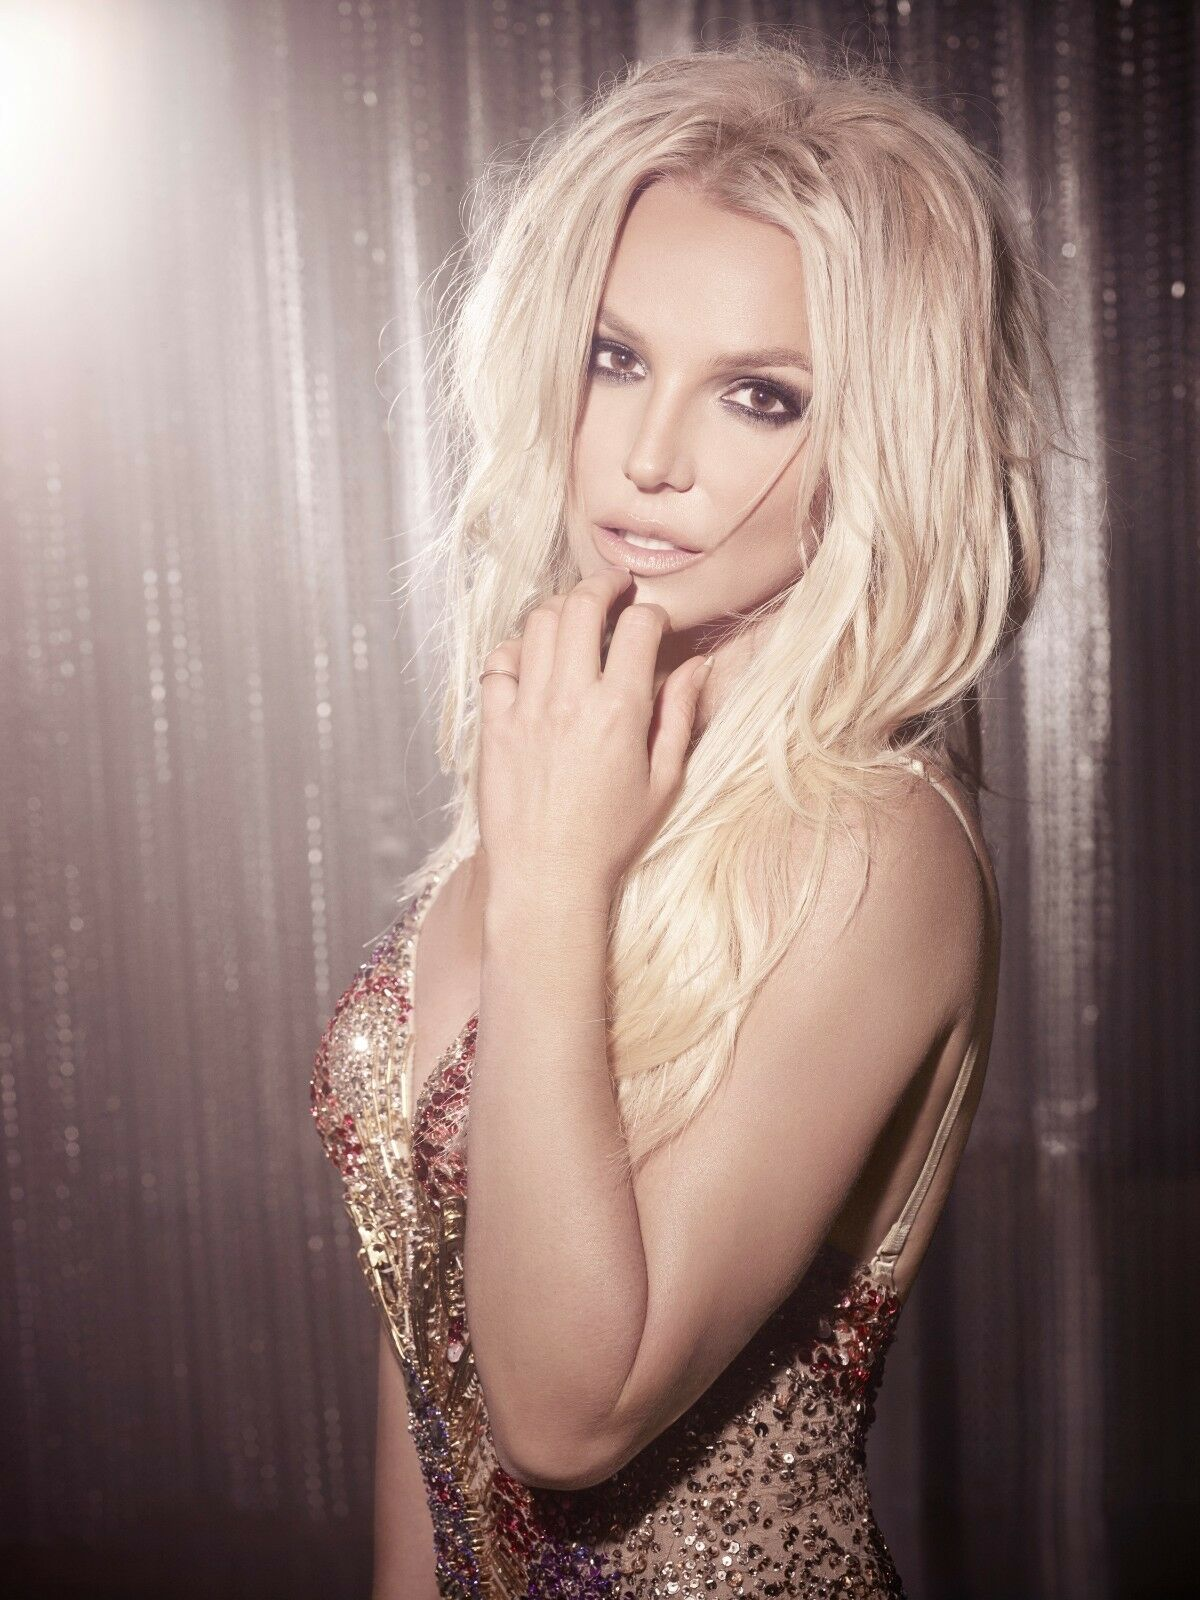 Primary image for BRITNEY SPEARS SHIMMER 2 POSTER 24 X 36 Inches Looks great